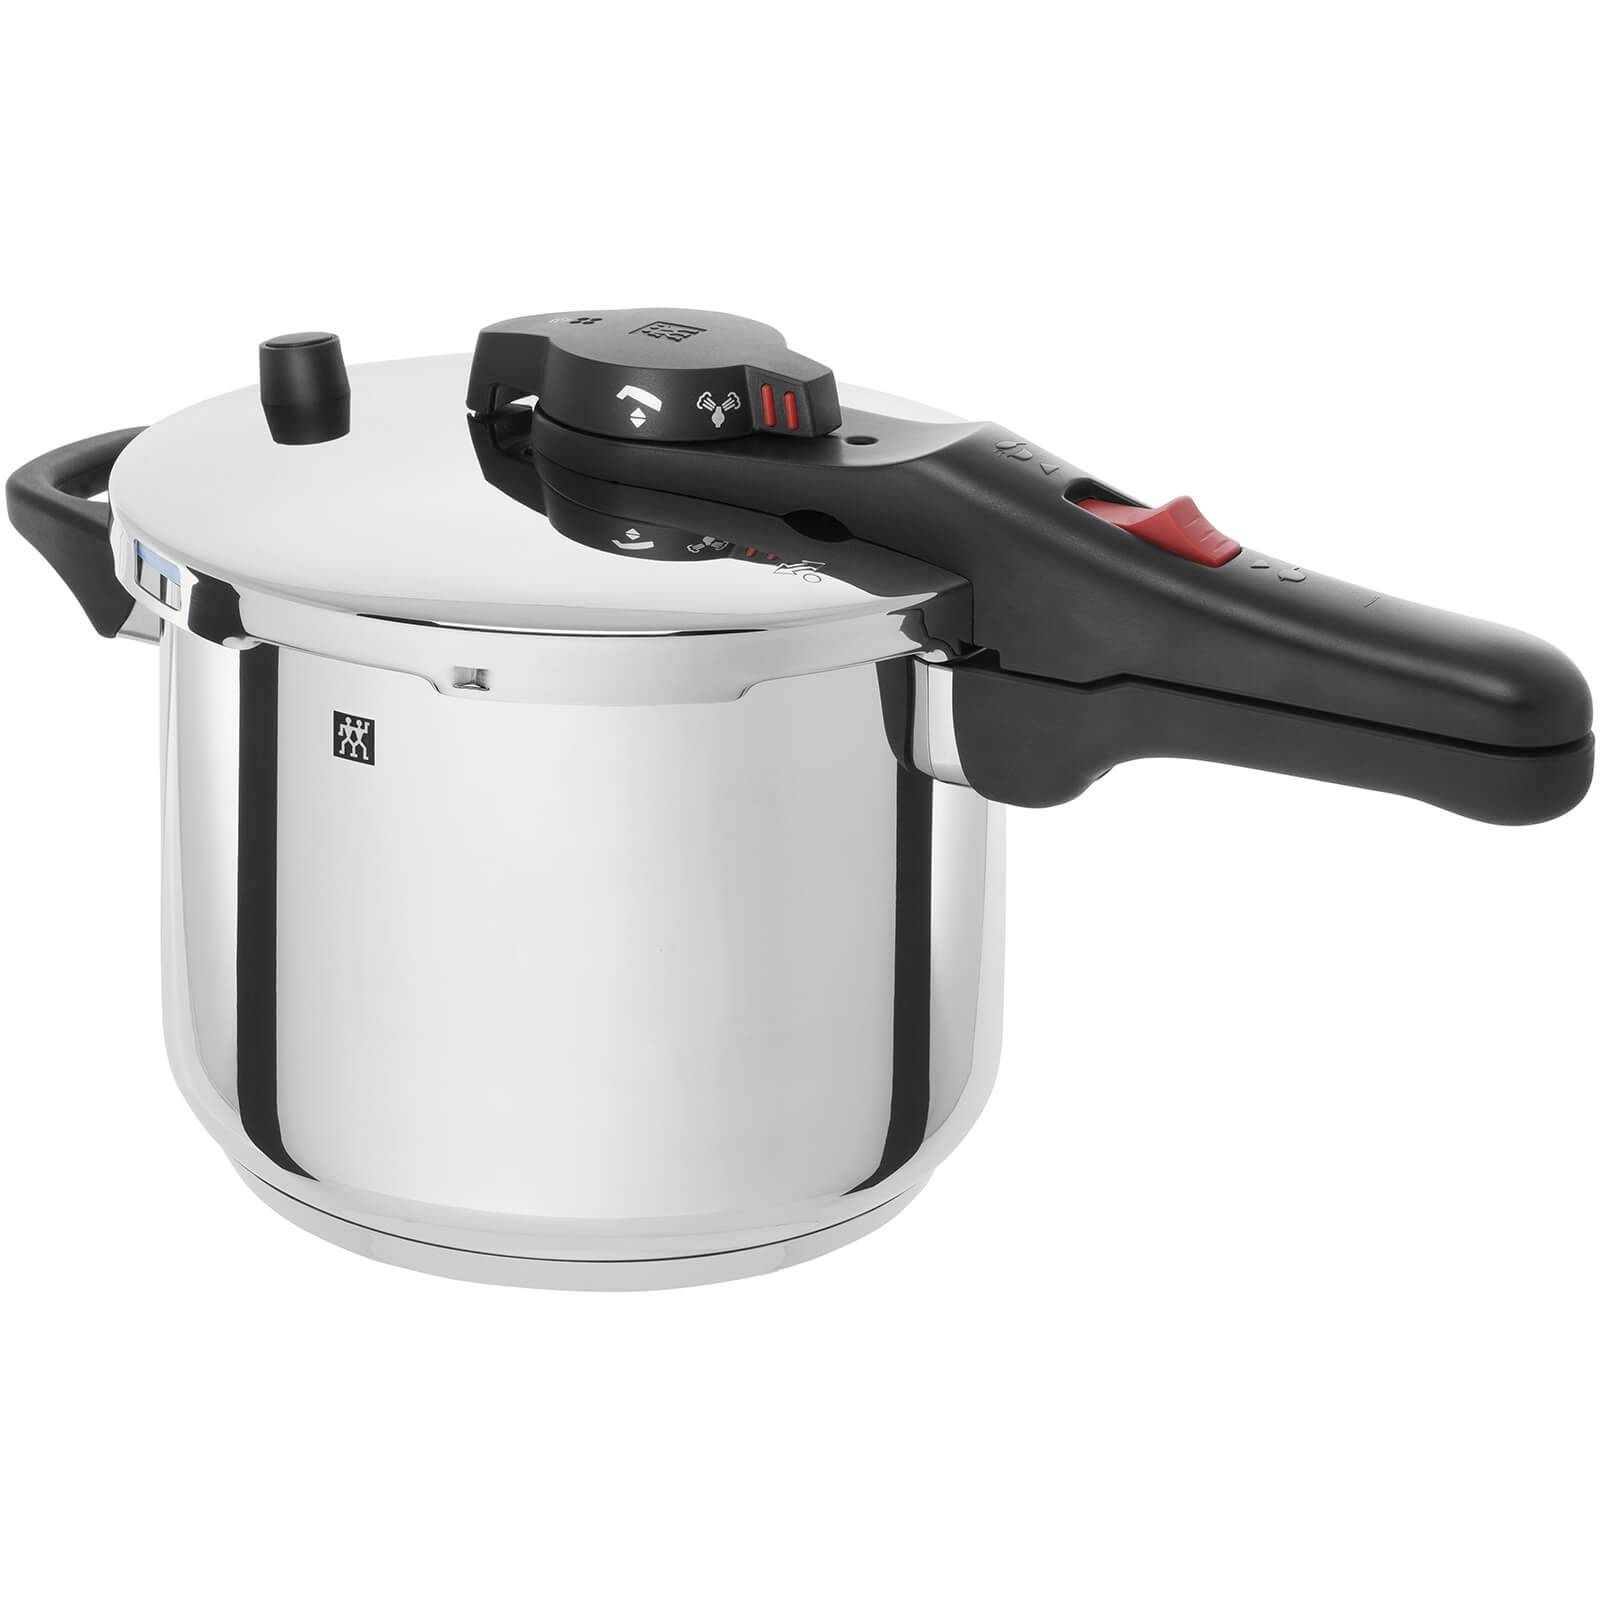 ZWILLING Aircontrol Pressure Cooker - 6L